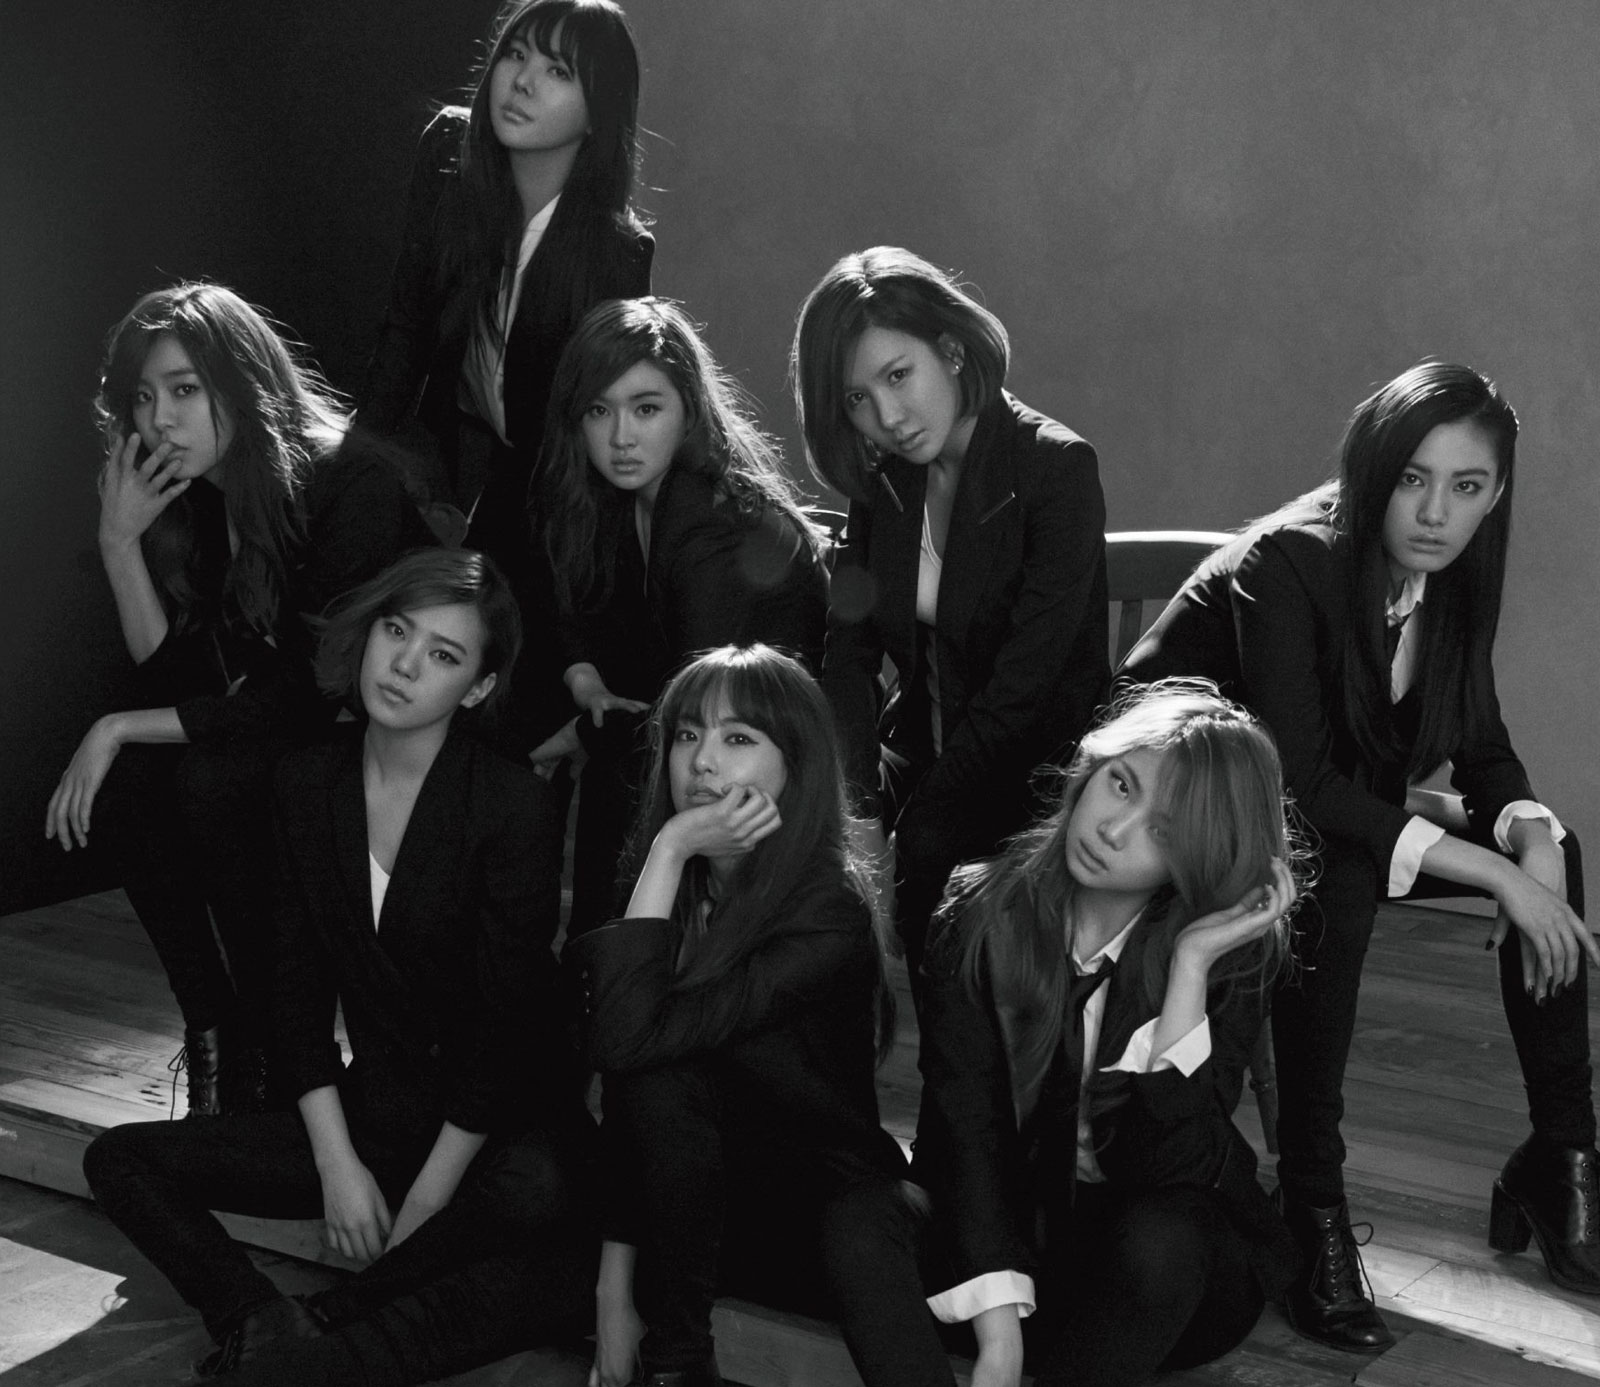 After School Shh Japanese single